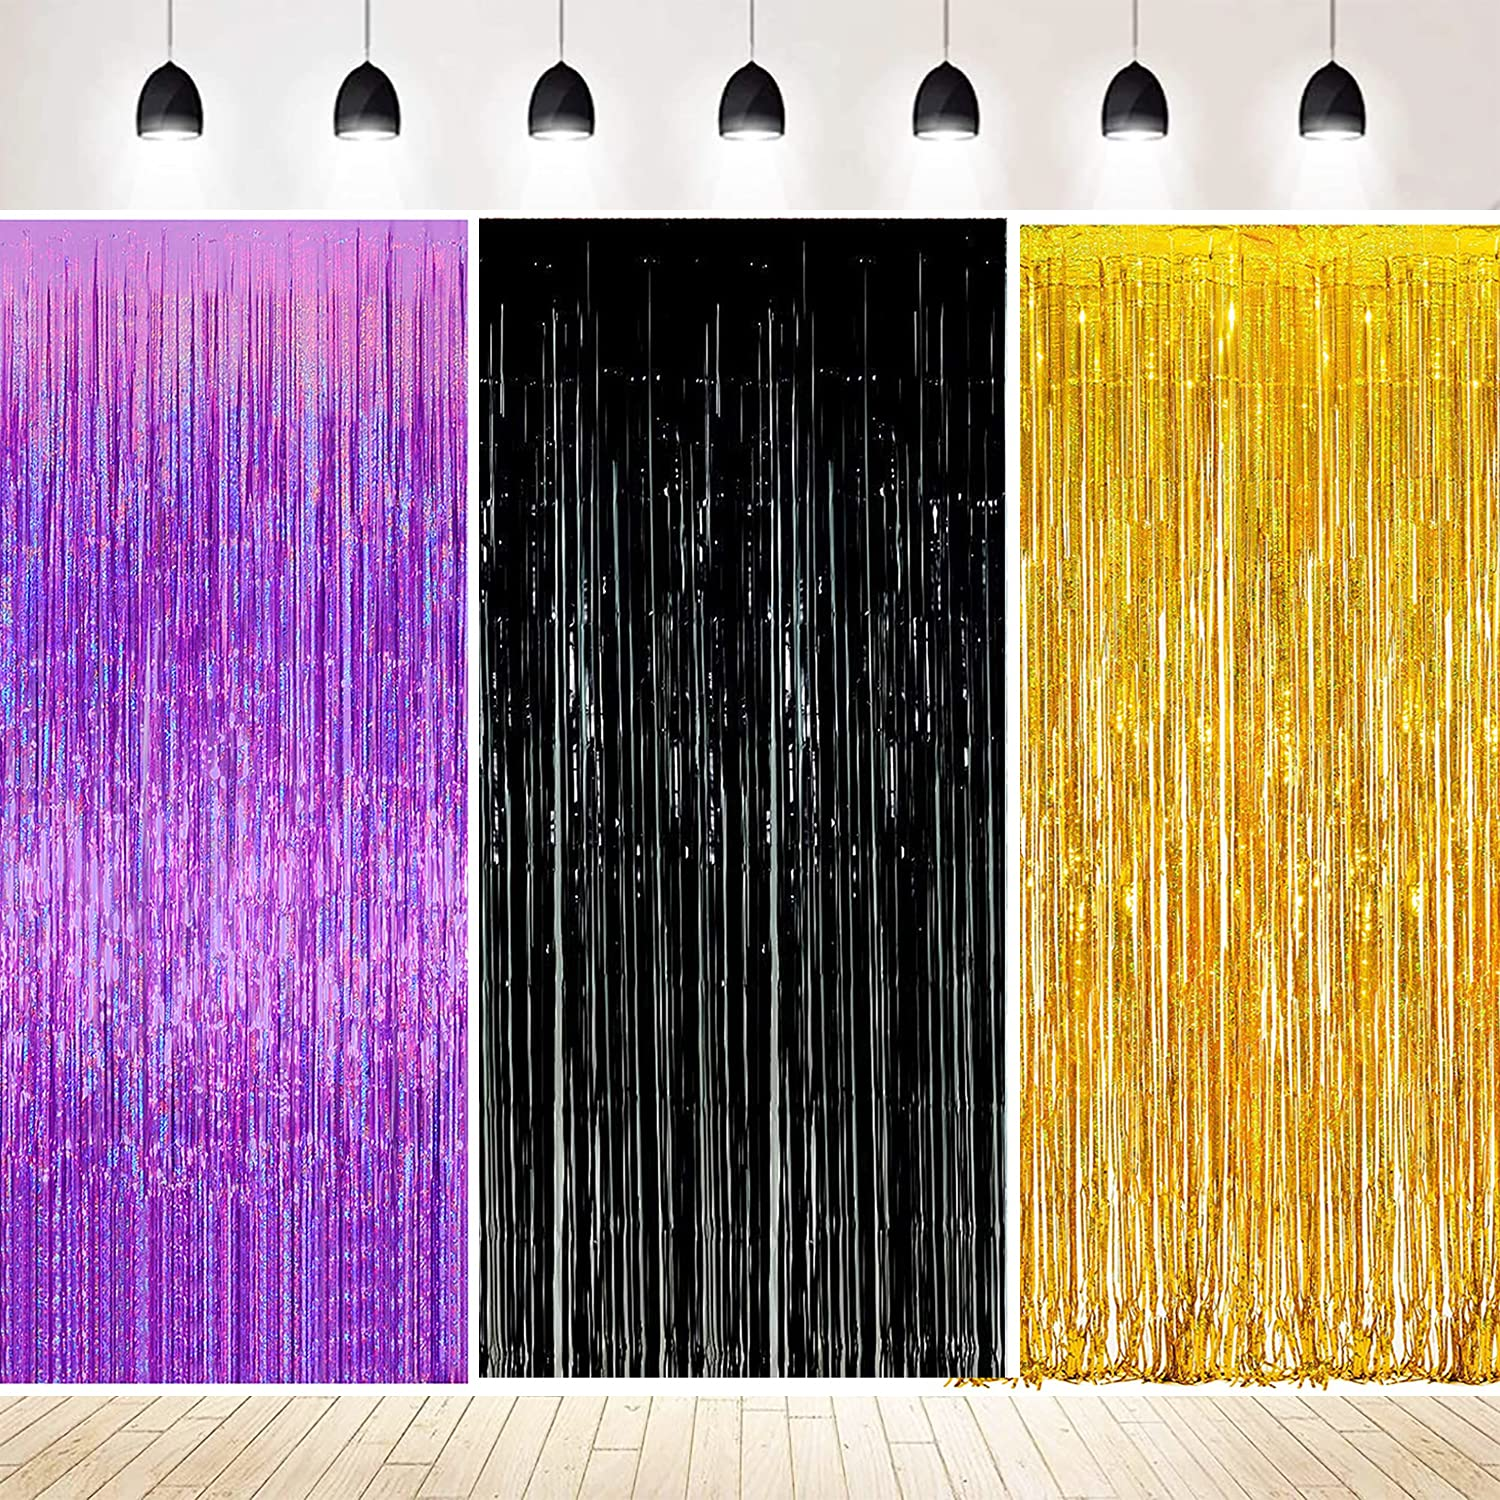 Birthday Decorations Purple Gold for Women Qian's Party 2021 Graduation Decorations Purple Gold Black Foil Fringe Curtains Backdrop Sparkle Metallic Foil Curtains for Purple 2021 Graduation Party Photo Booth Props Decorations